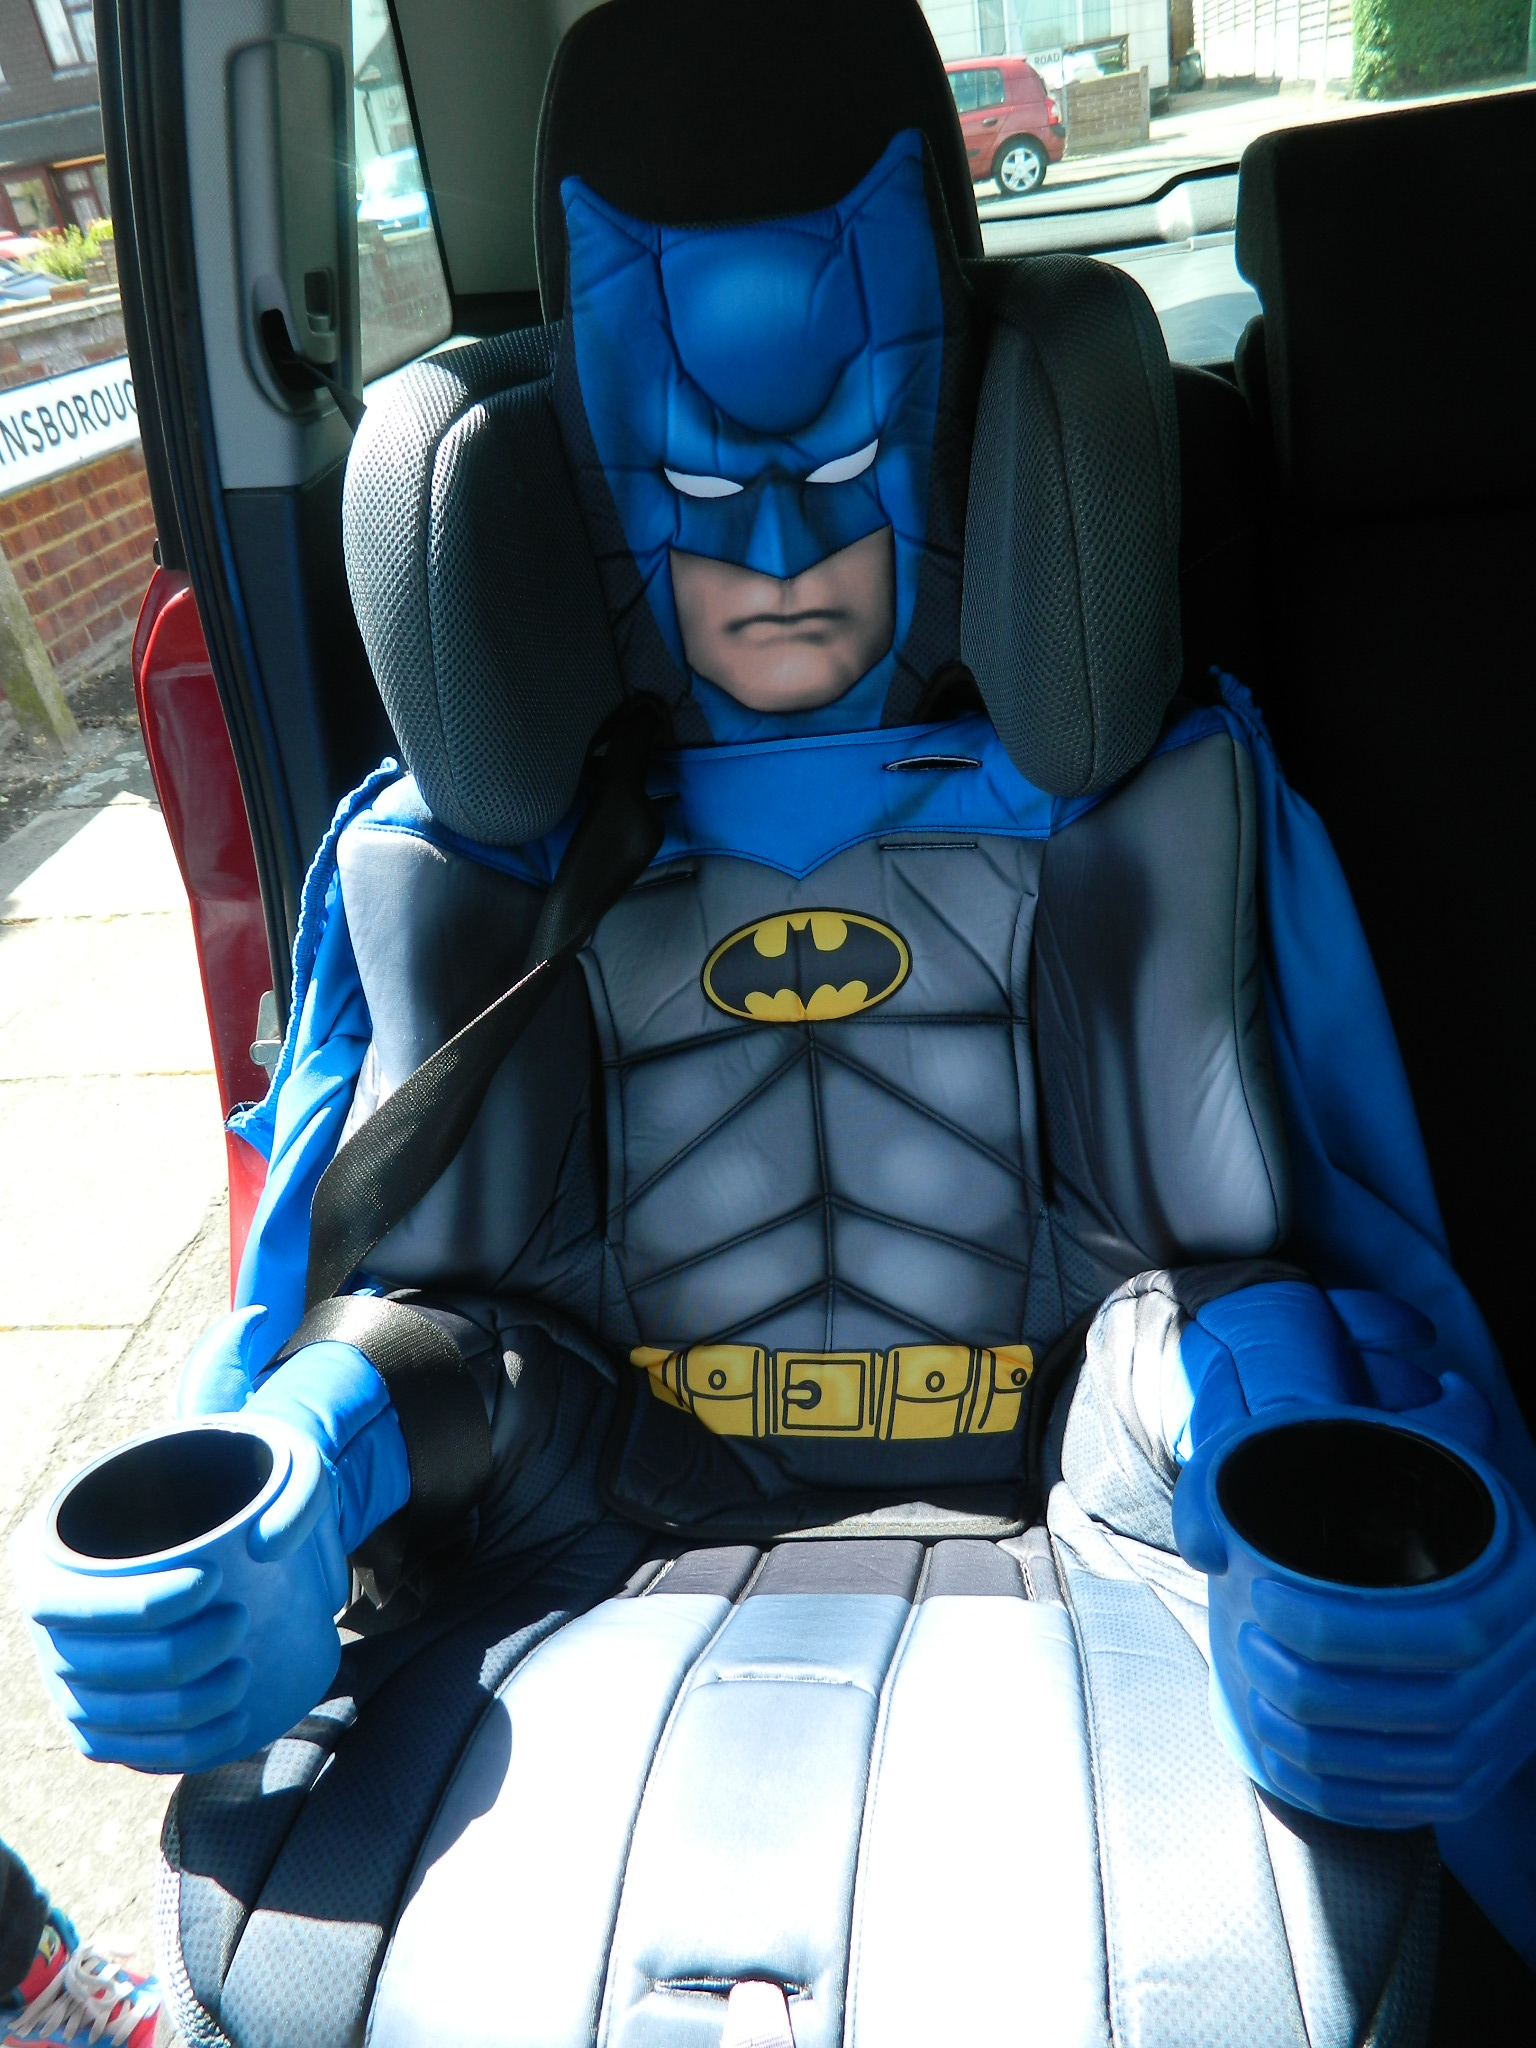 Batman Deluxe Car Seat